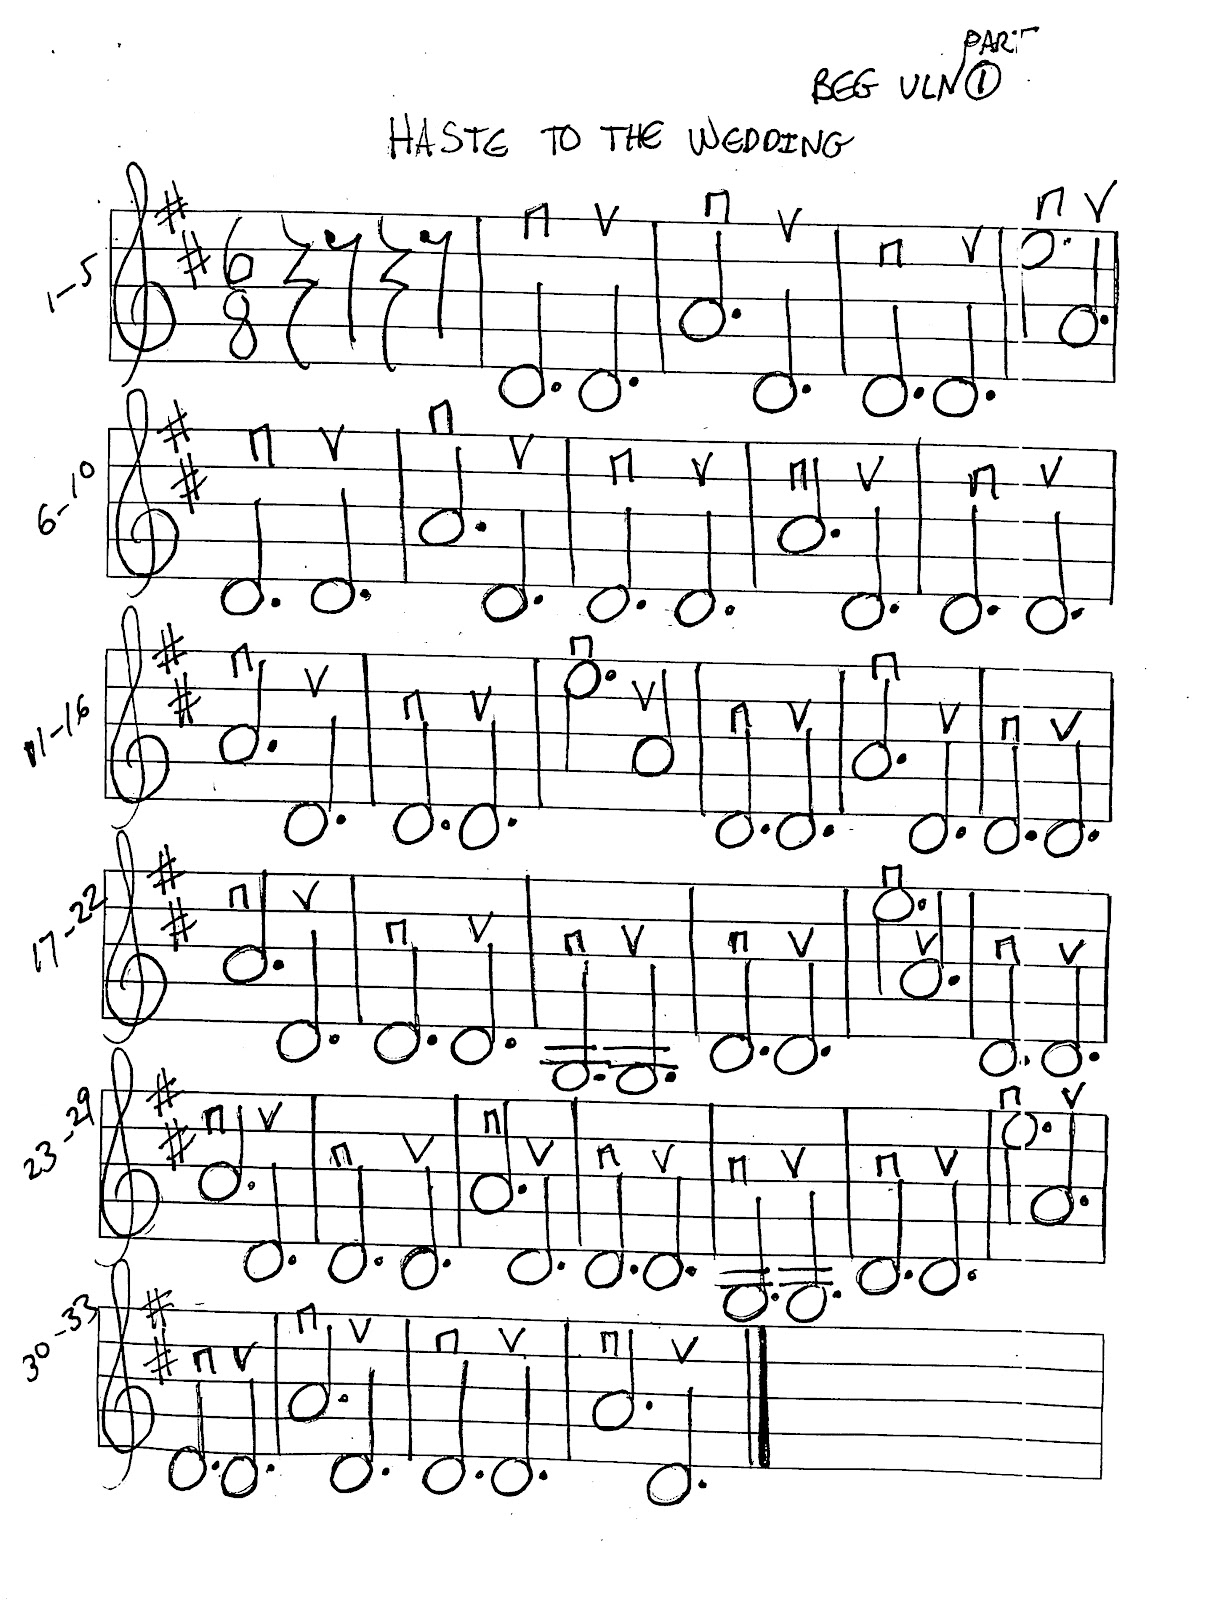 Miss Jacobson's Music: HASTE TO THE WEDDING MUSIC WORKSHEETS